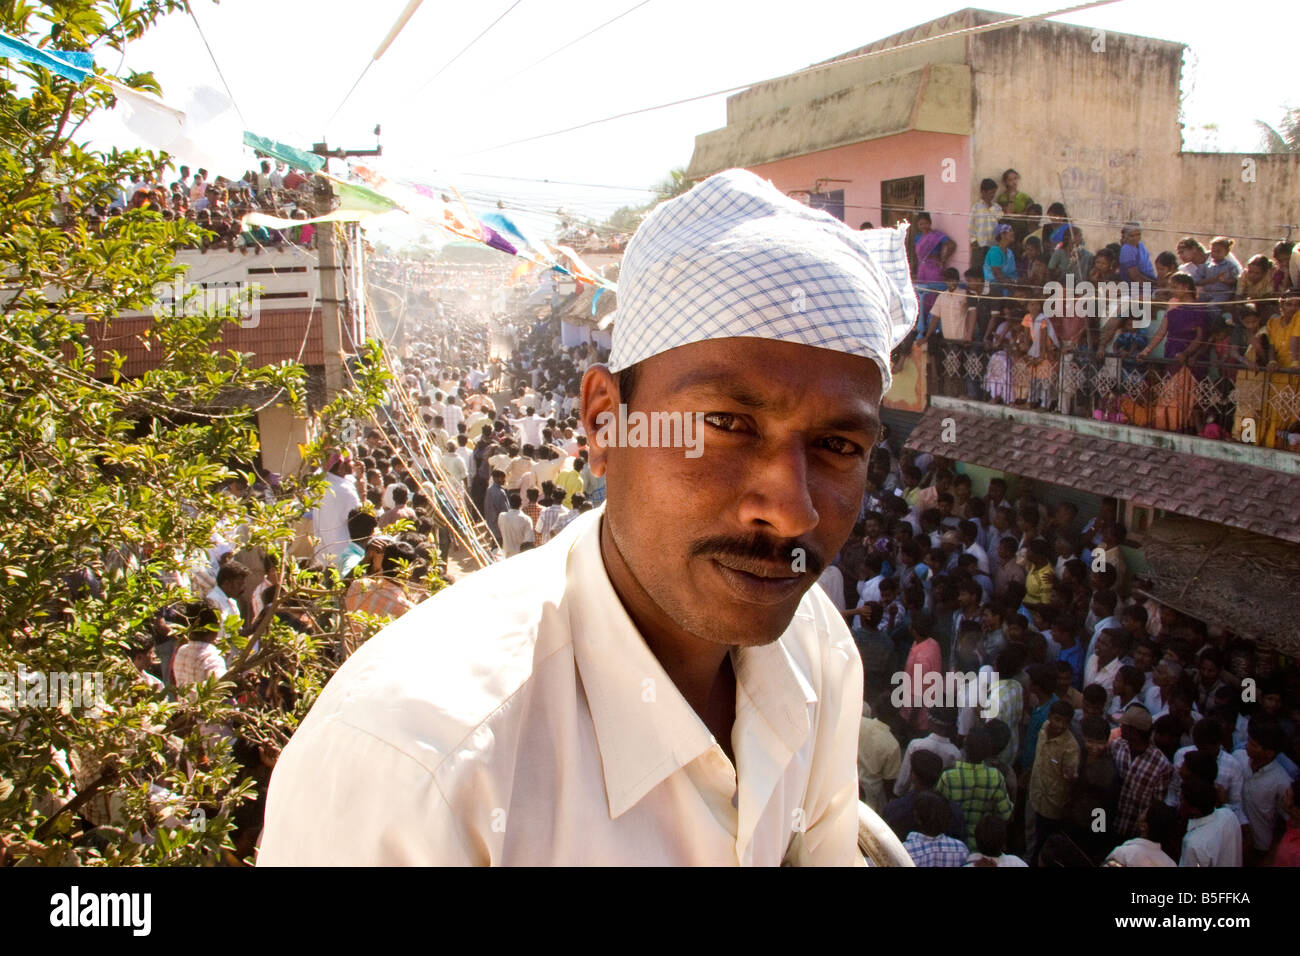 A man stands among people cram onto a roof under live electricity wires to watch bull racing. - Stock Image